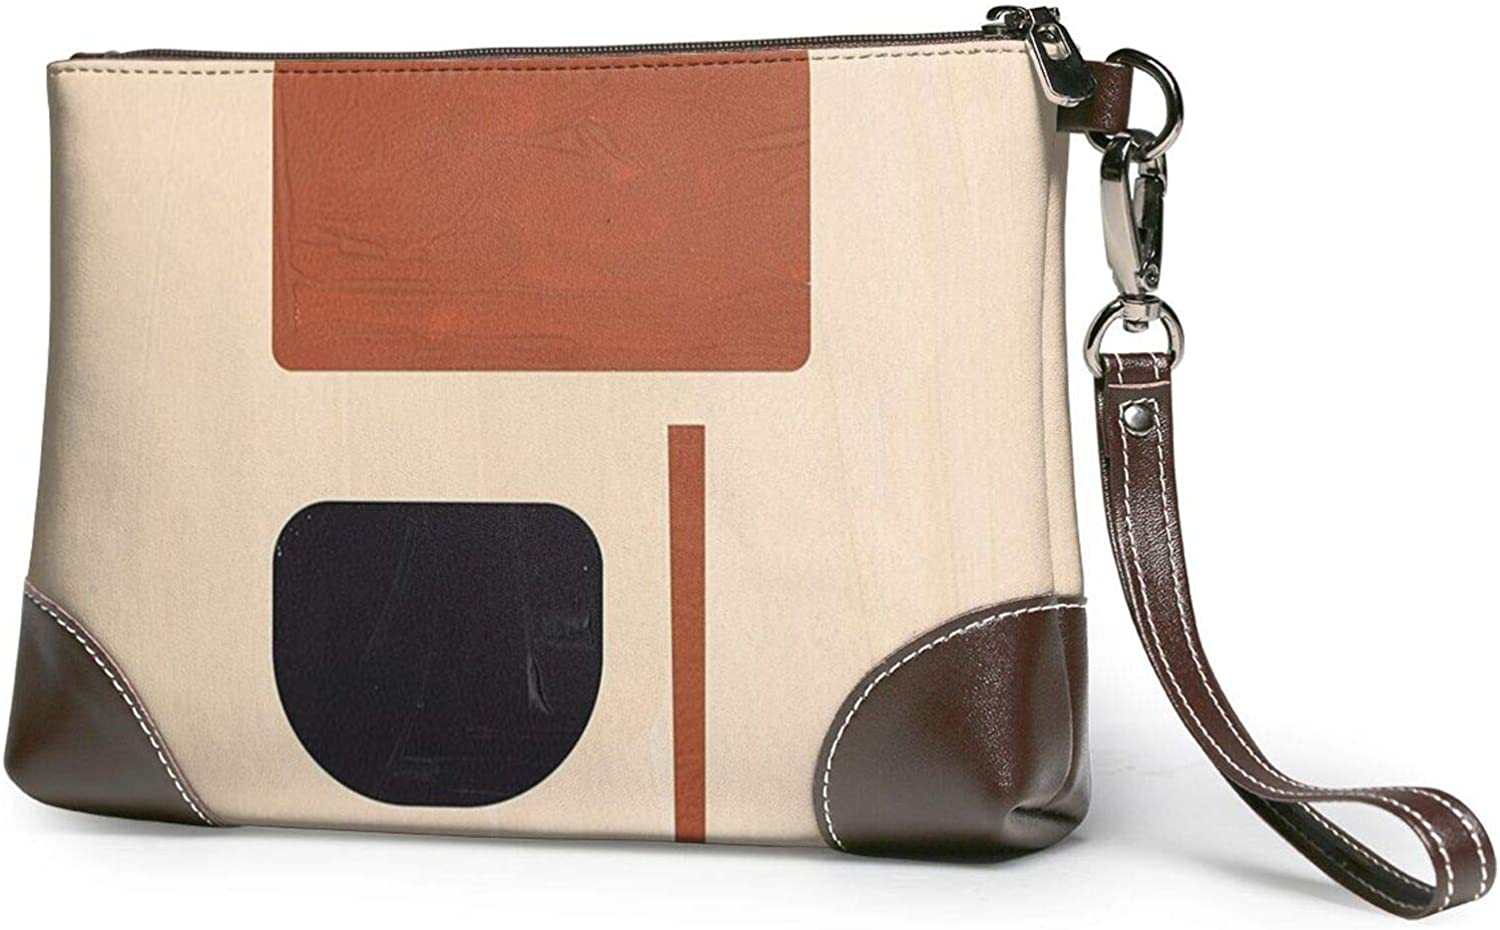 Abstract Geometric Clutch Purses Wristlet Wallet El Paso Mall Challenge the lowest price of Japan ☆ Leather